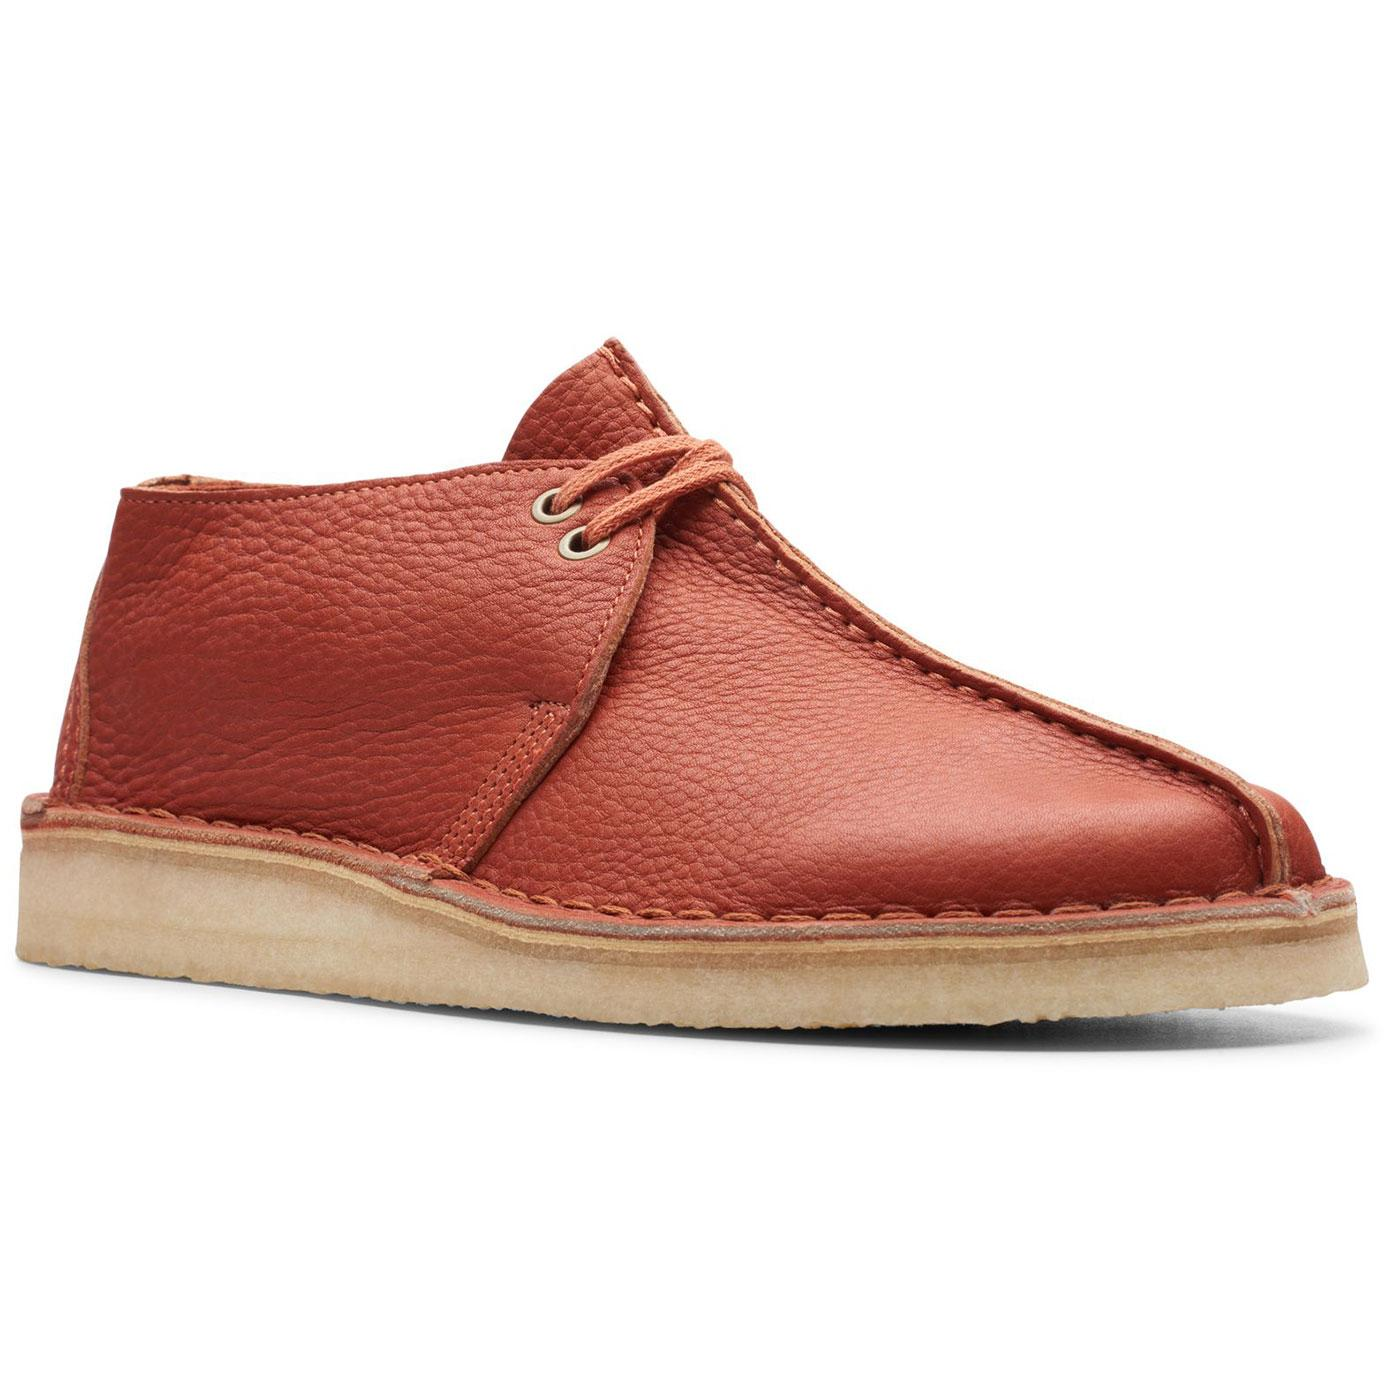 Desert Trek CLARKS ORIGINALS Mod Leather Shoes BO